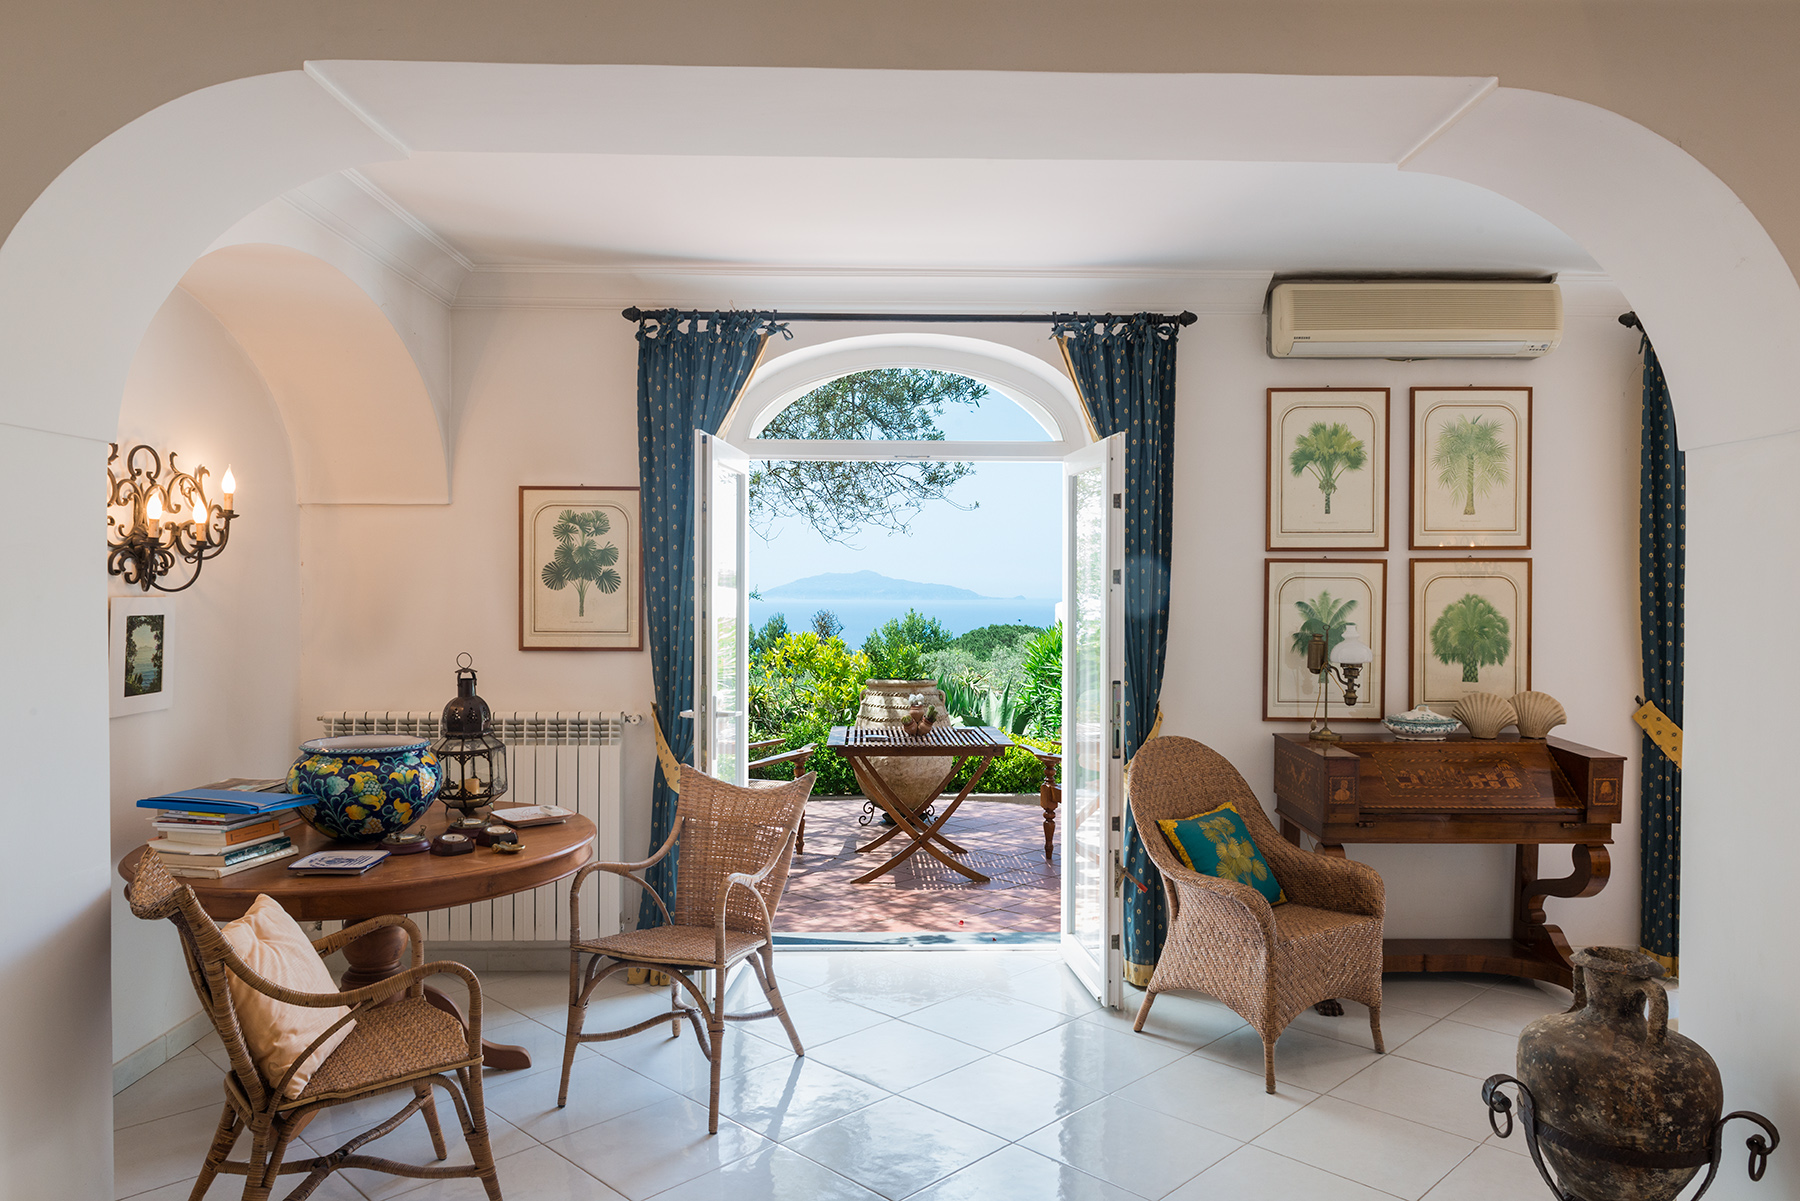 Additional photo for property listing at Elegant villa with pool in Anacapri Capri, Naples Italy